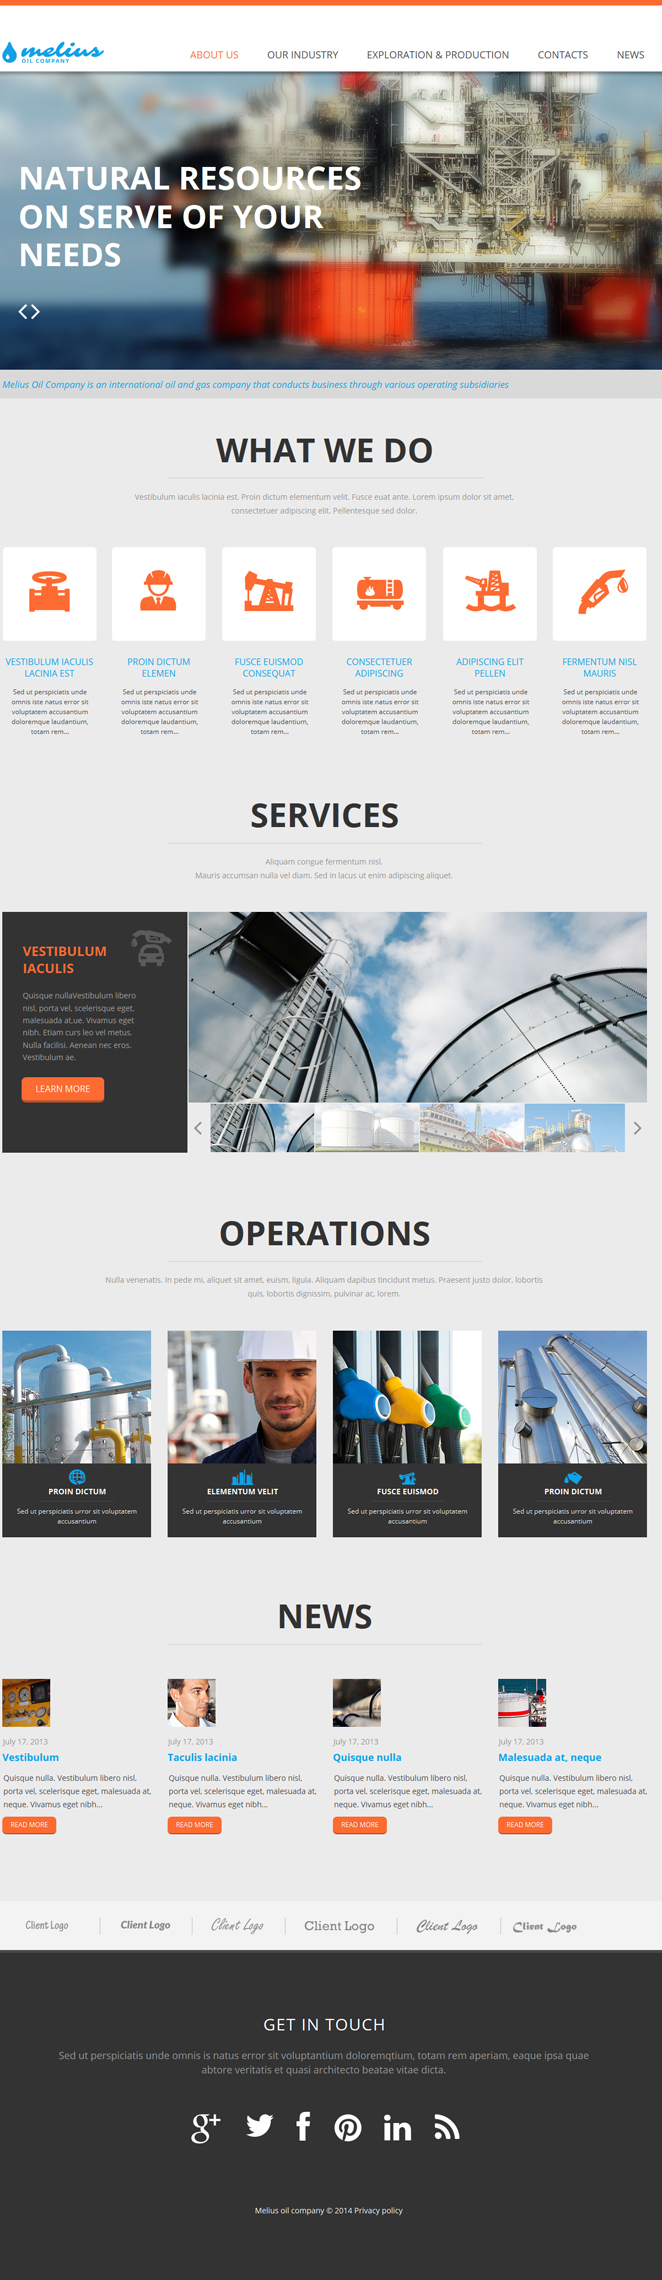 Oil Company Website Template with jQuery Slideshow - image